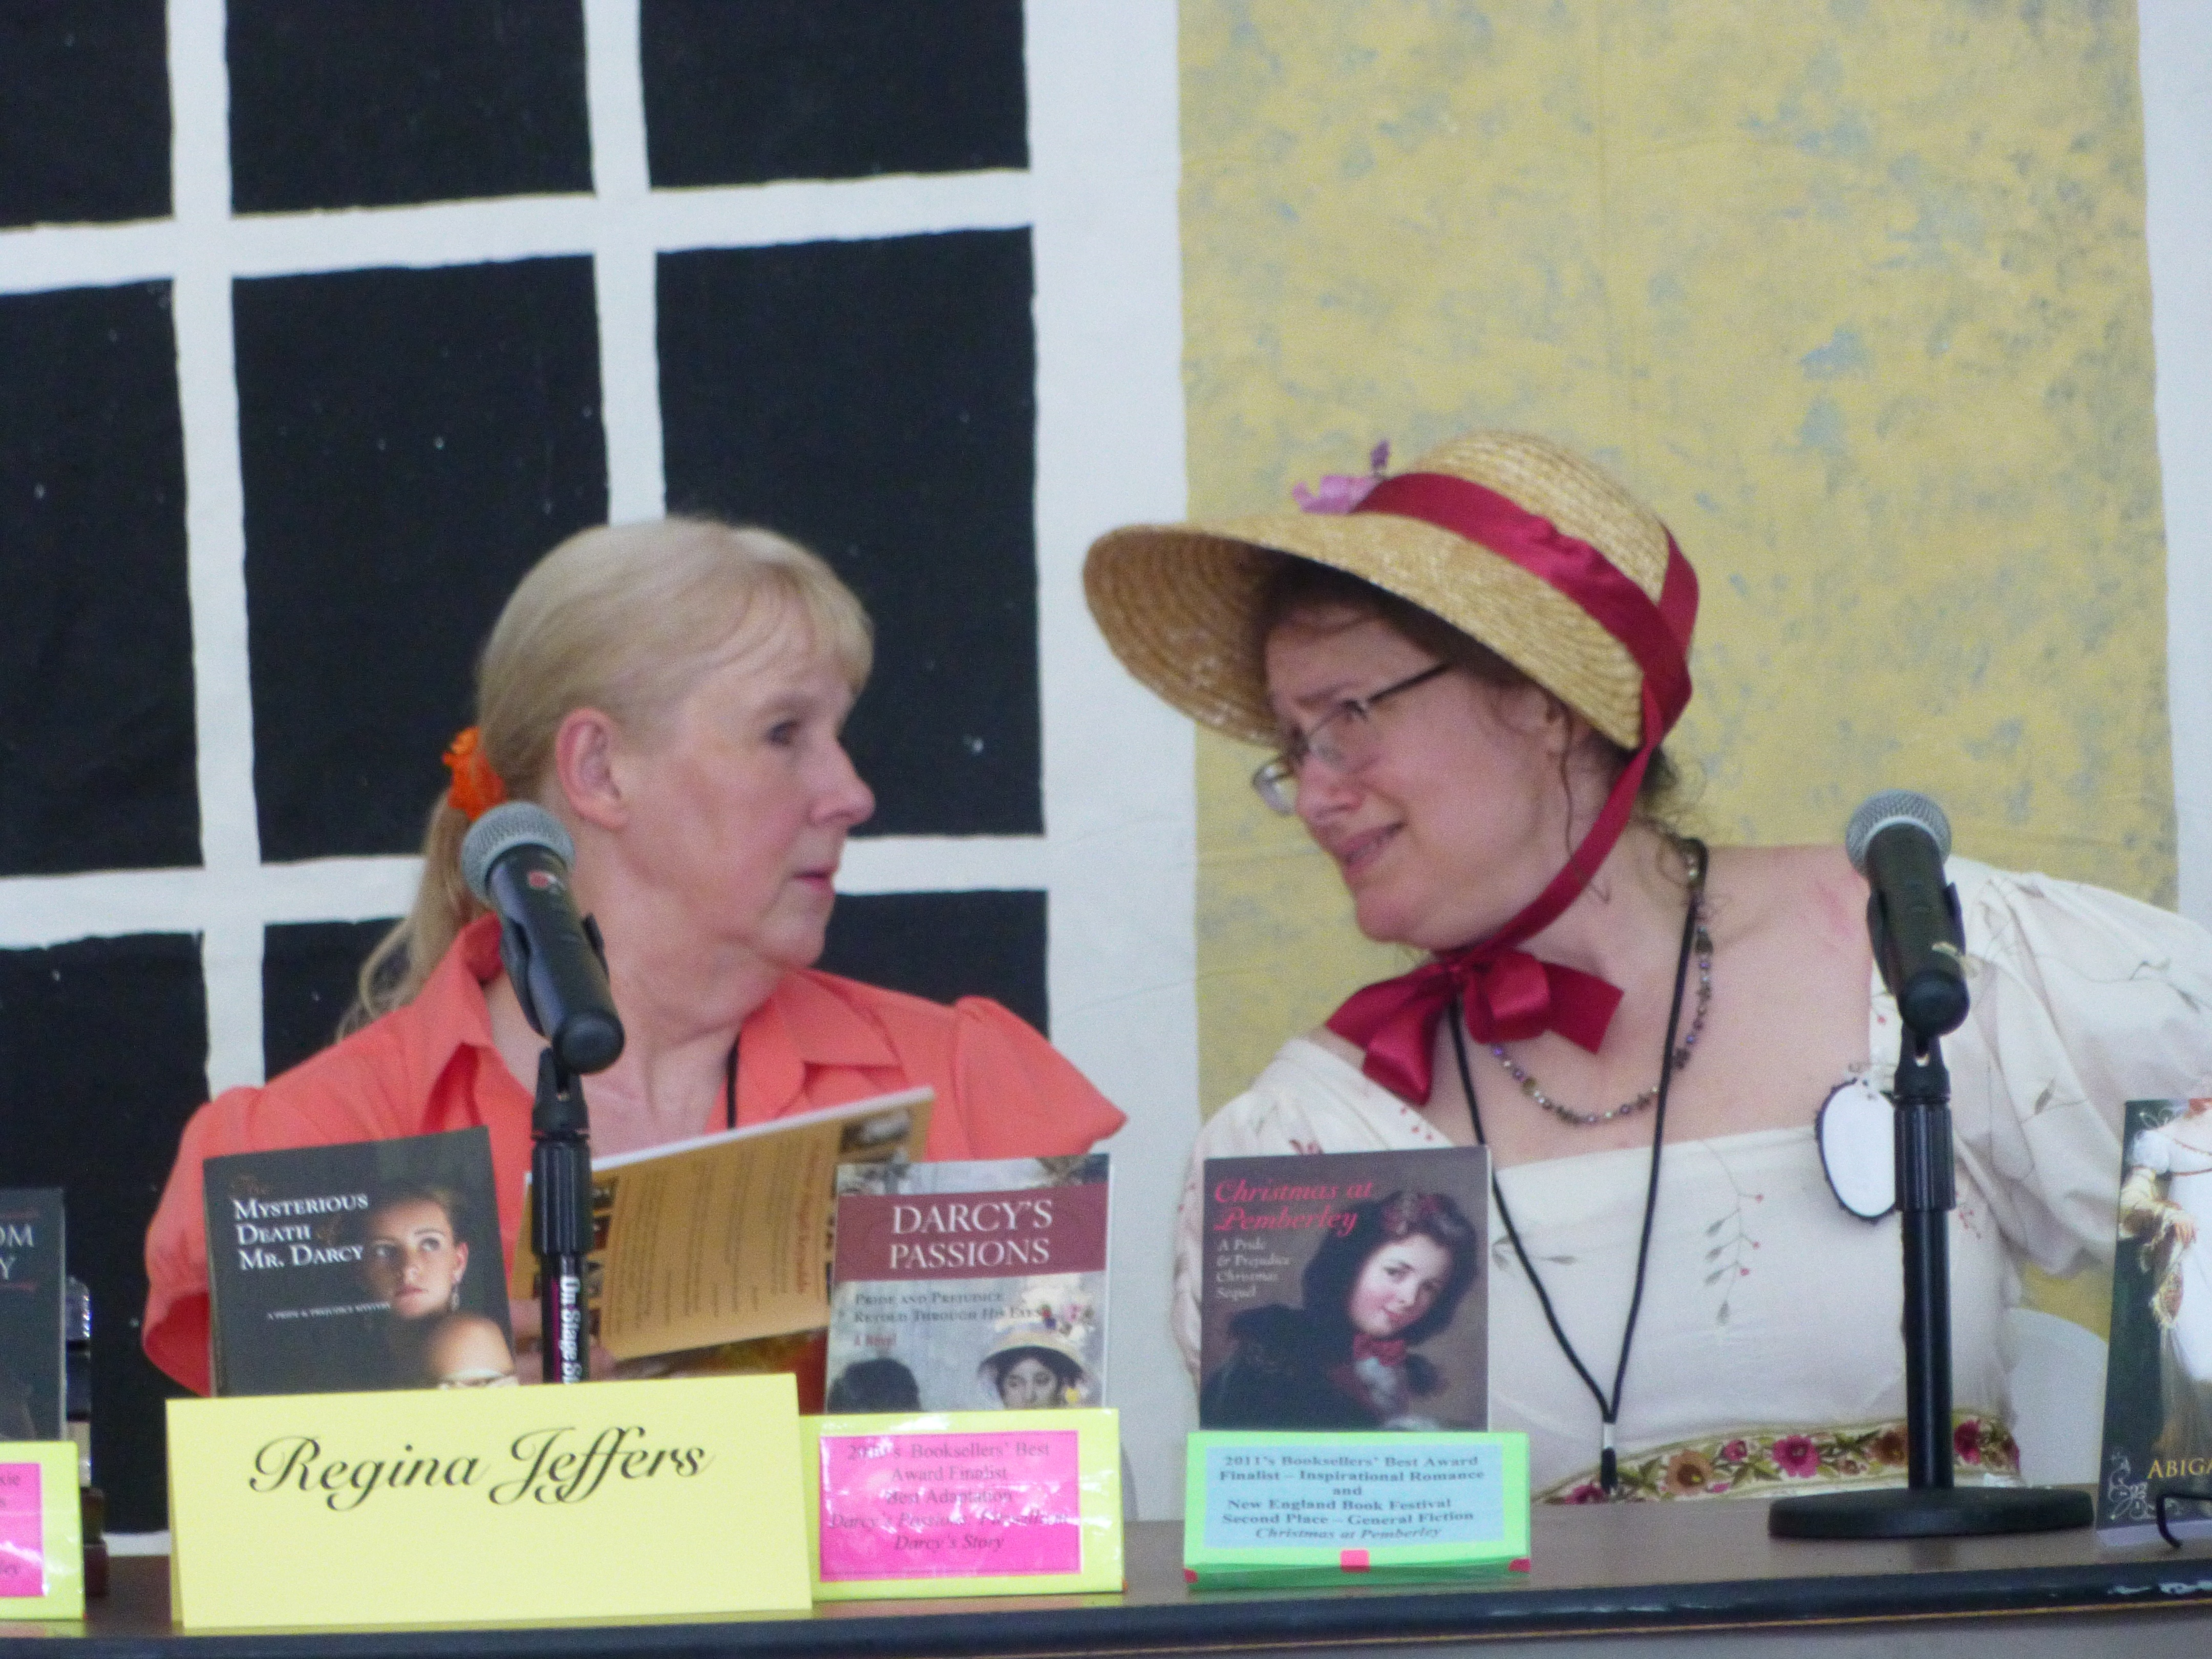 Author panel with Regina Jeffers and Abigail Reynolds